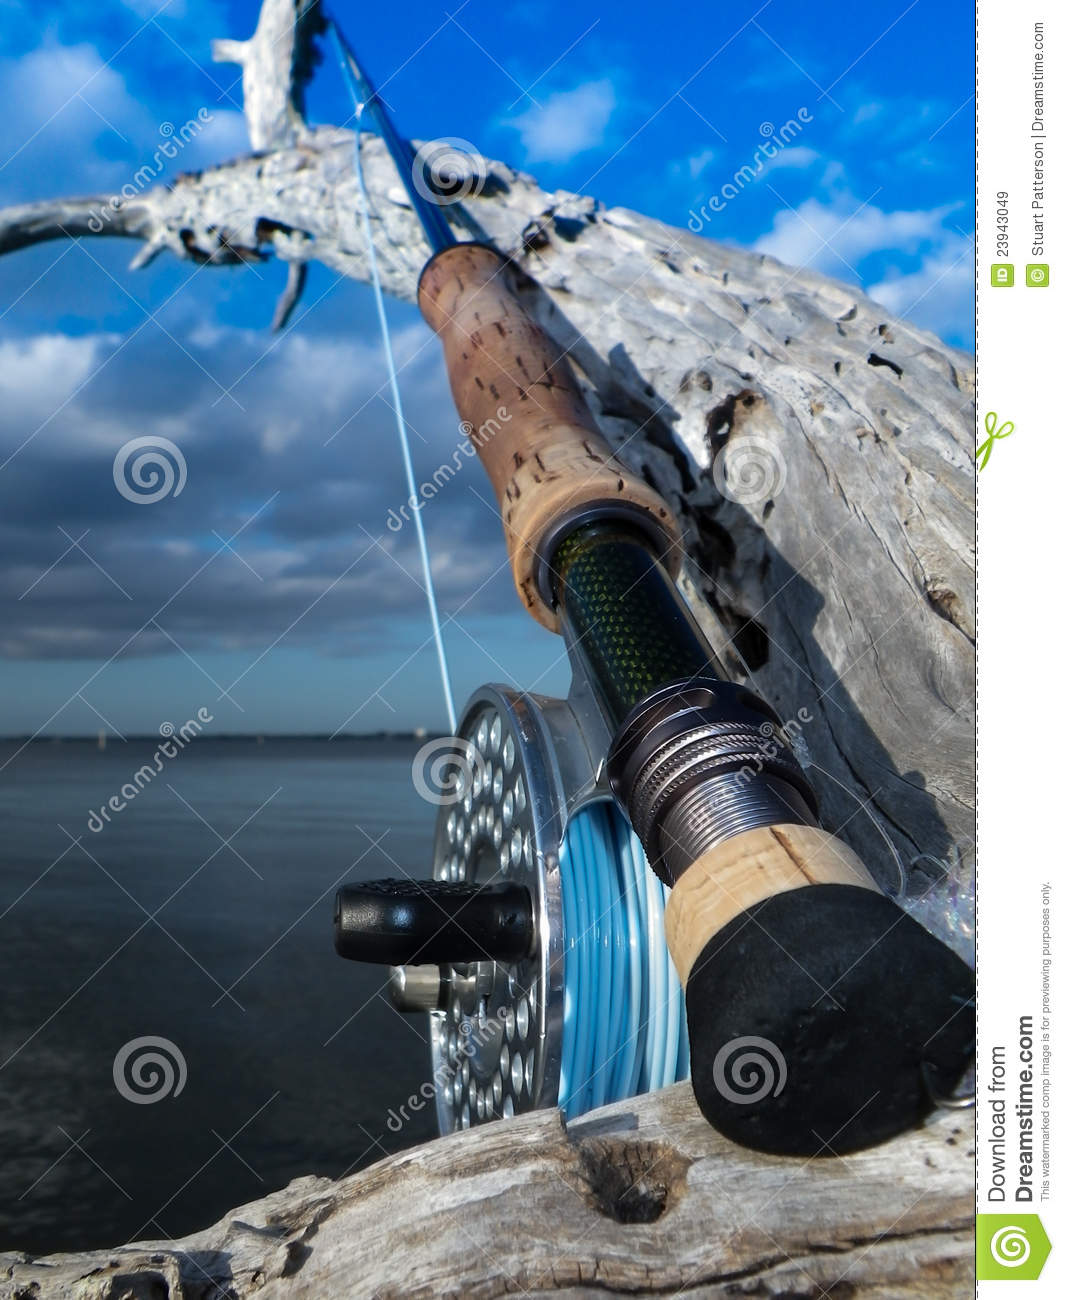 saltwater fly rod and reel royalty free stock images - image: 23943049, Fishing Reels